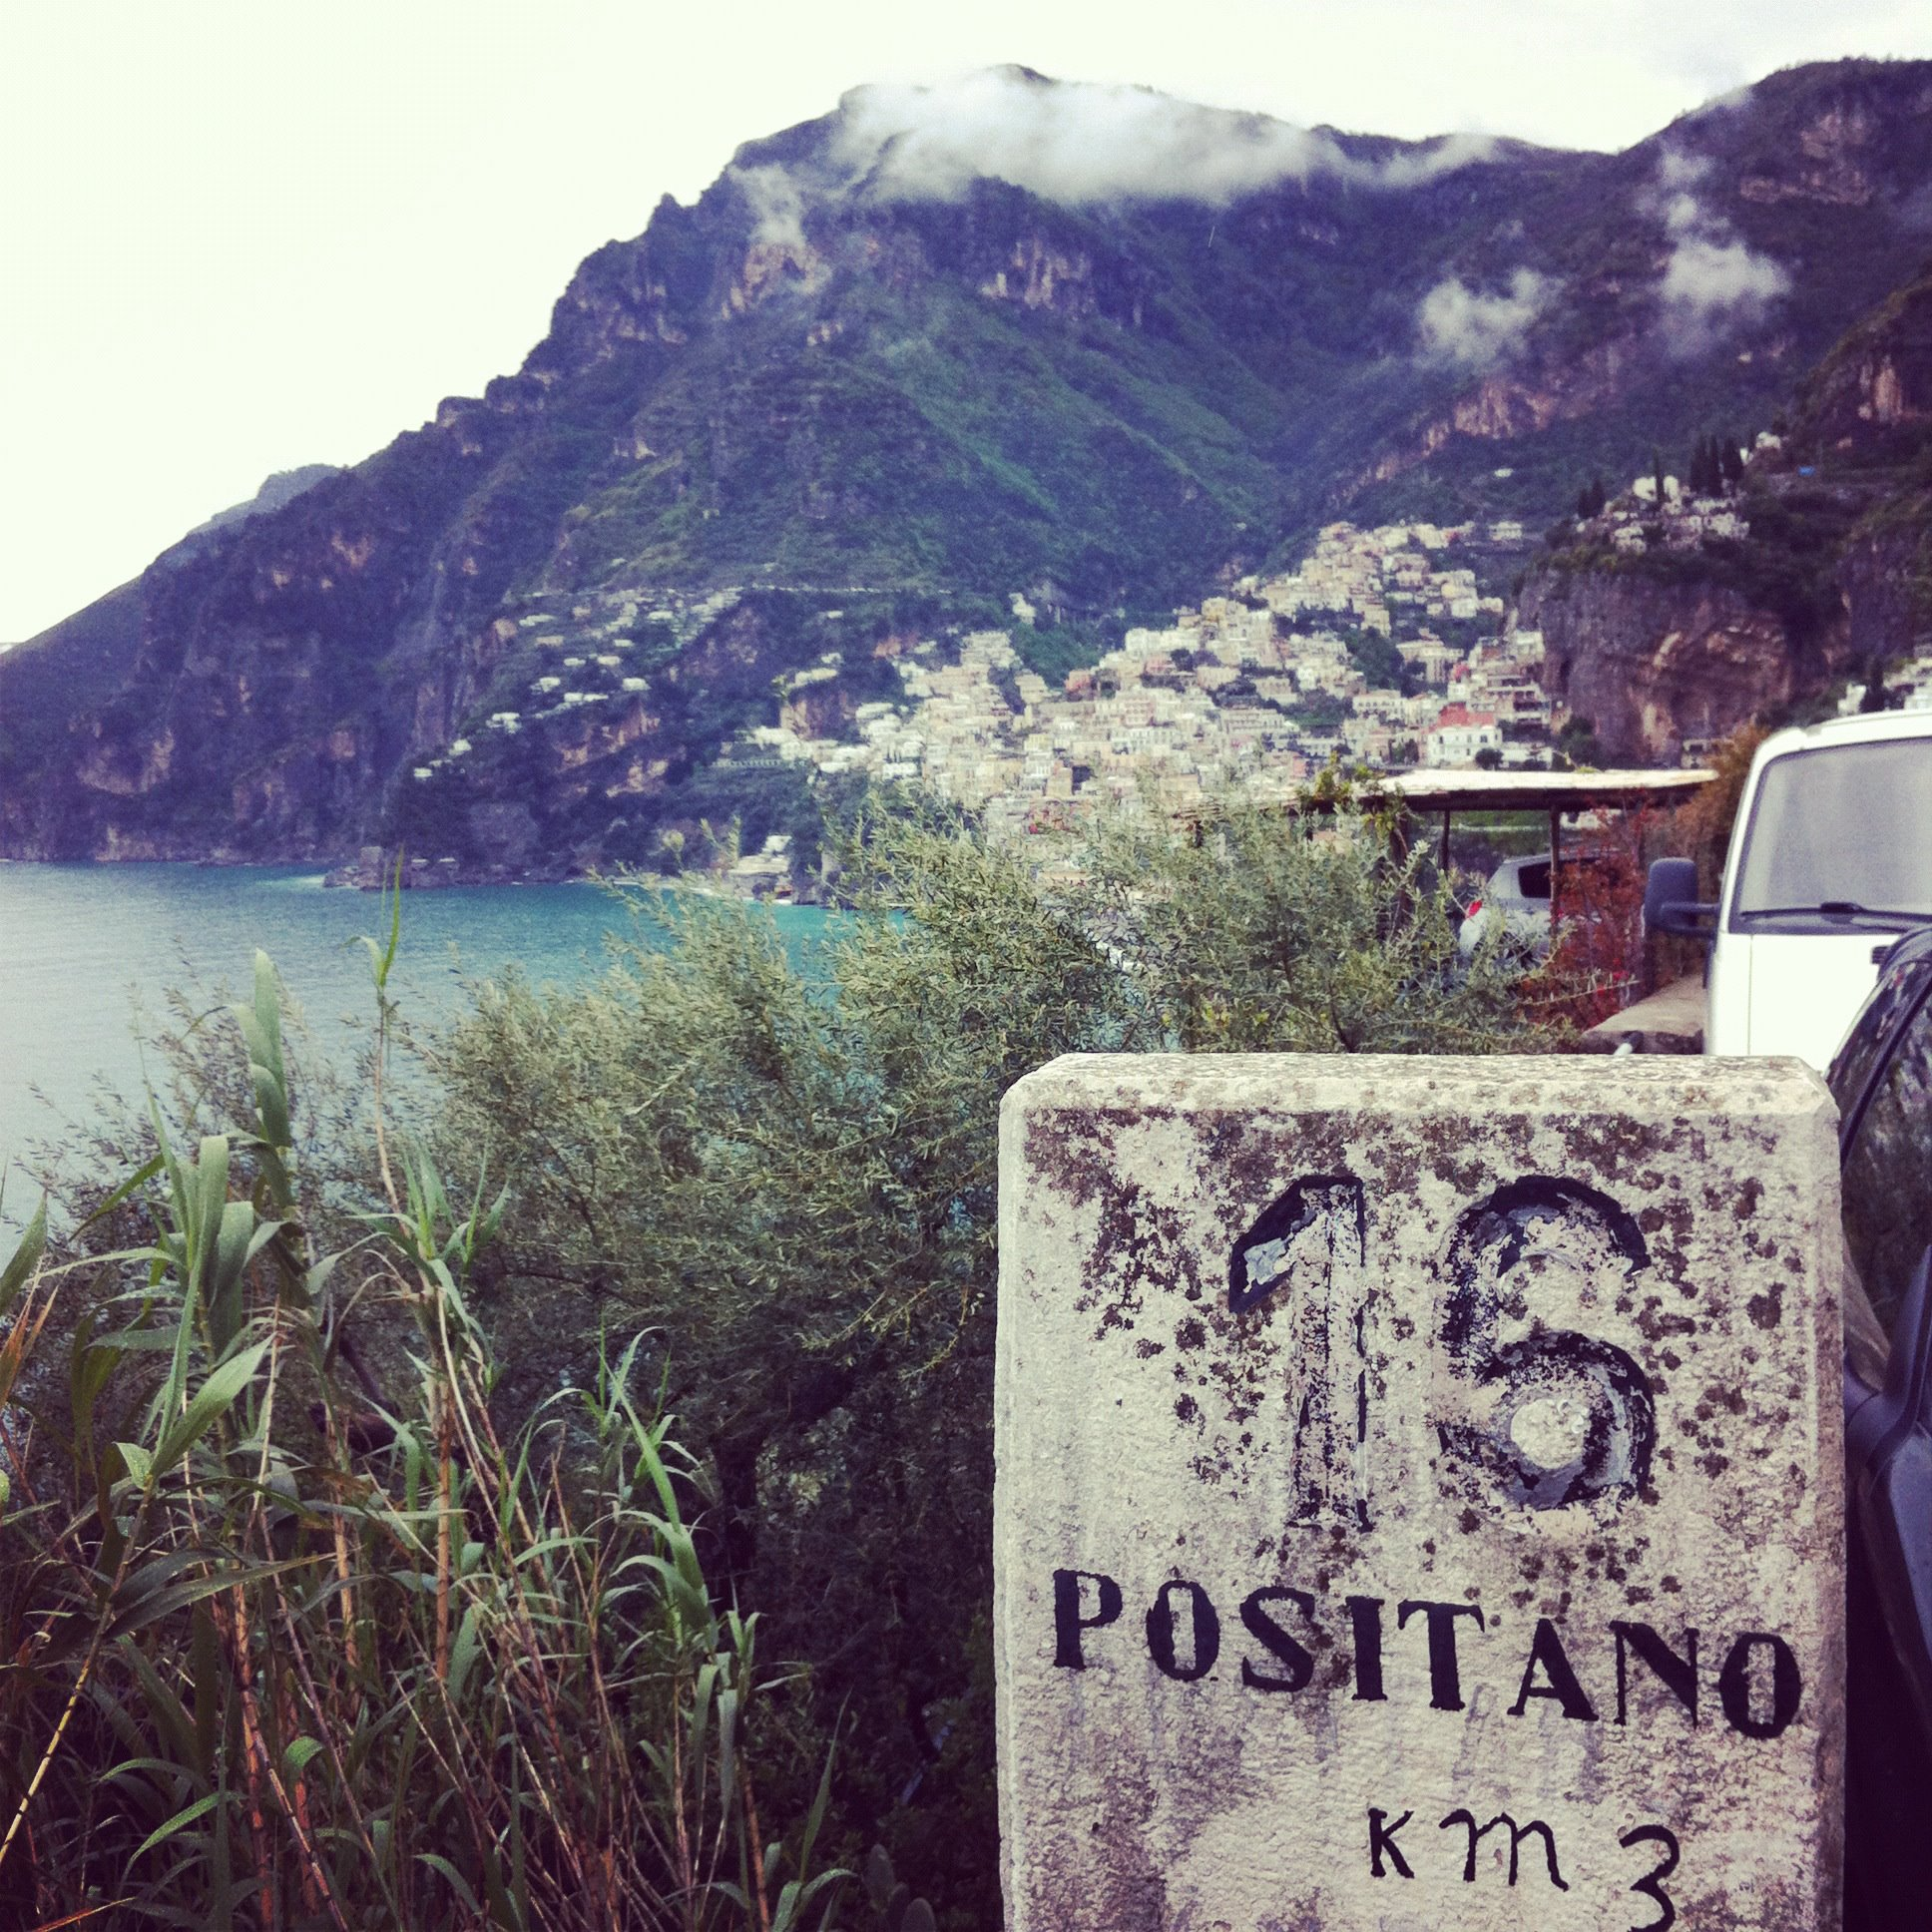 an old stone sign showing that Positano is only 15Km away..